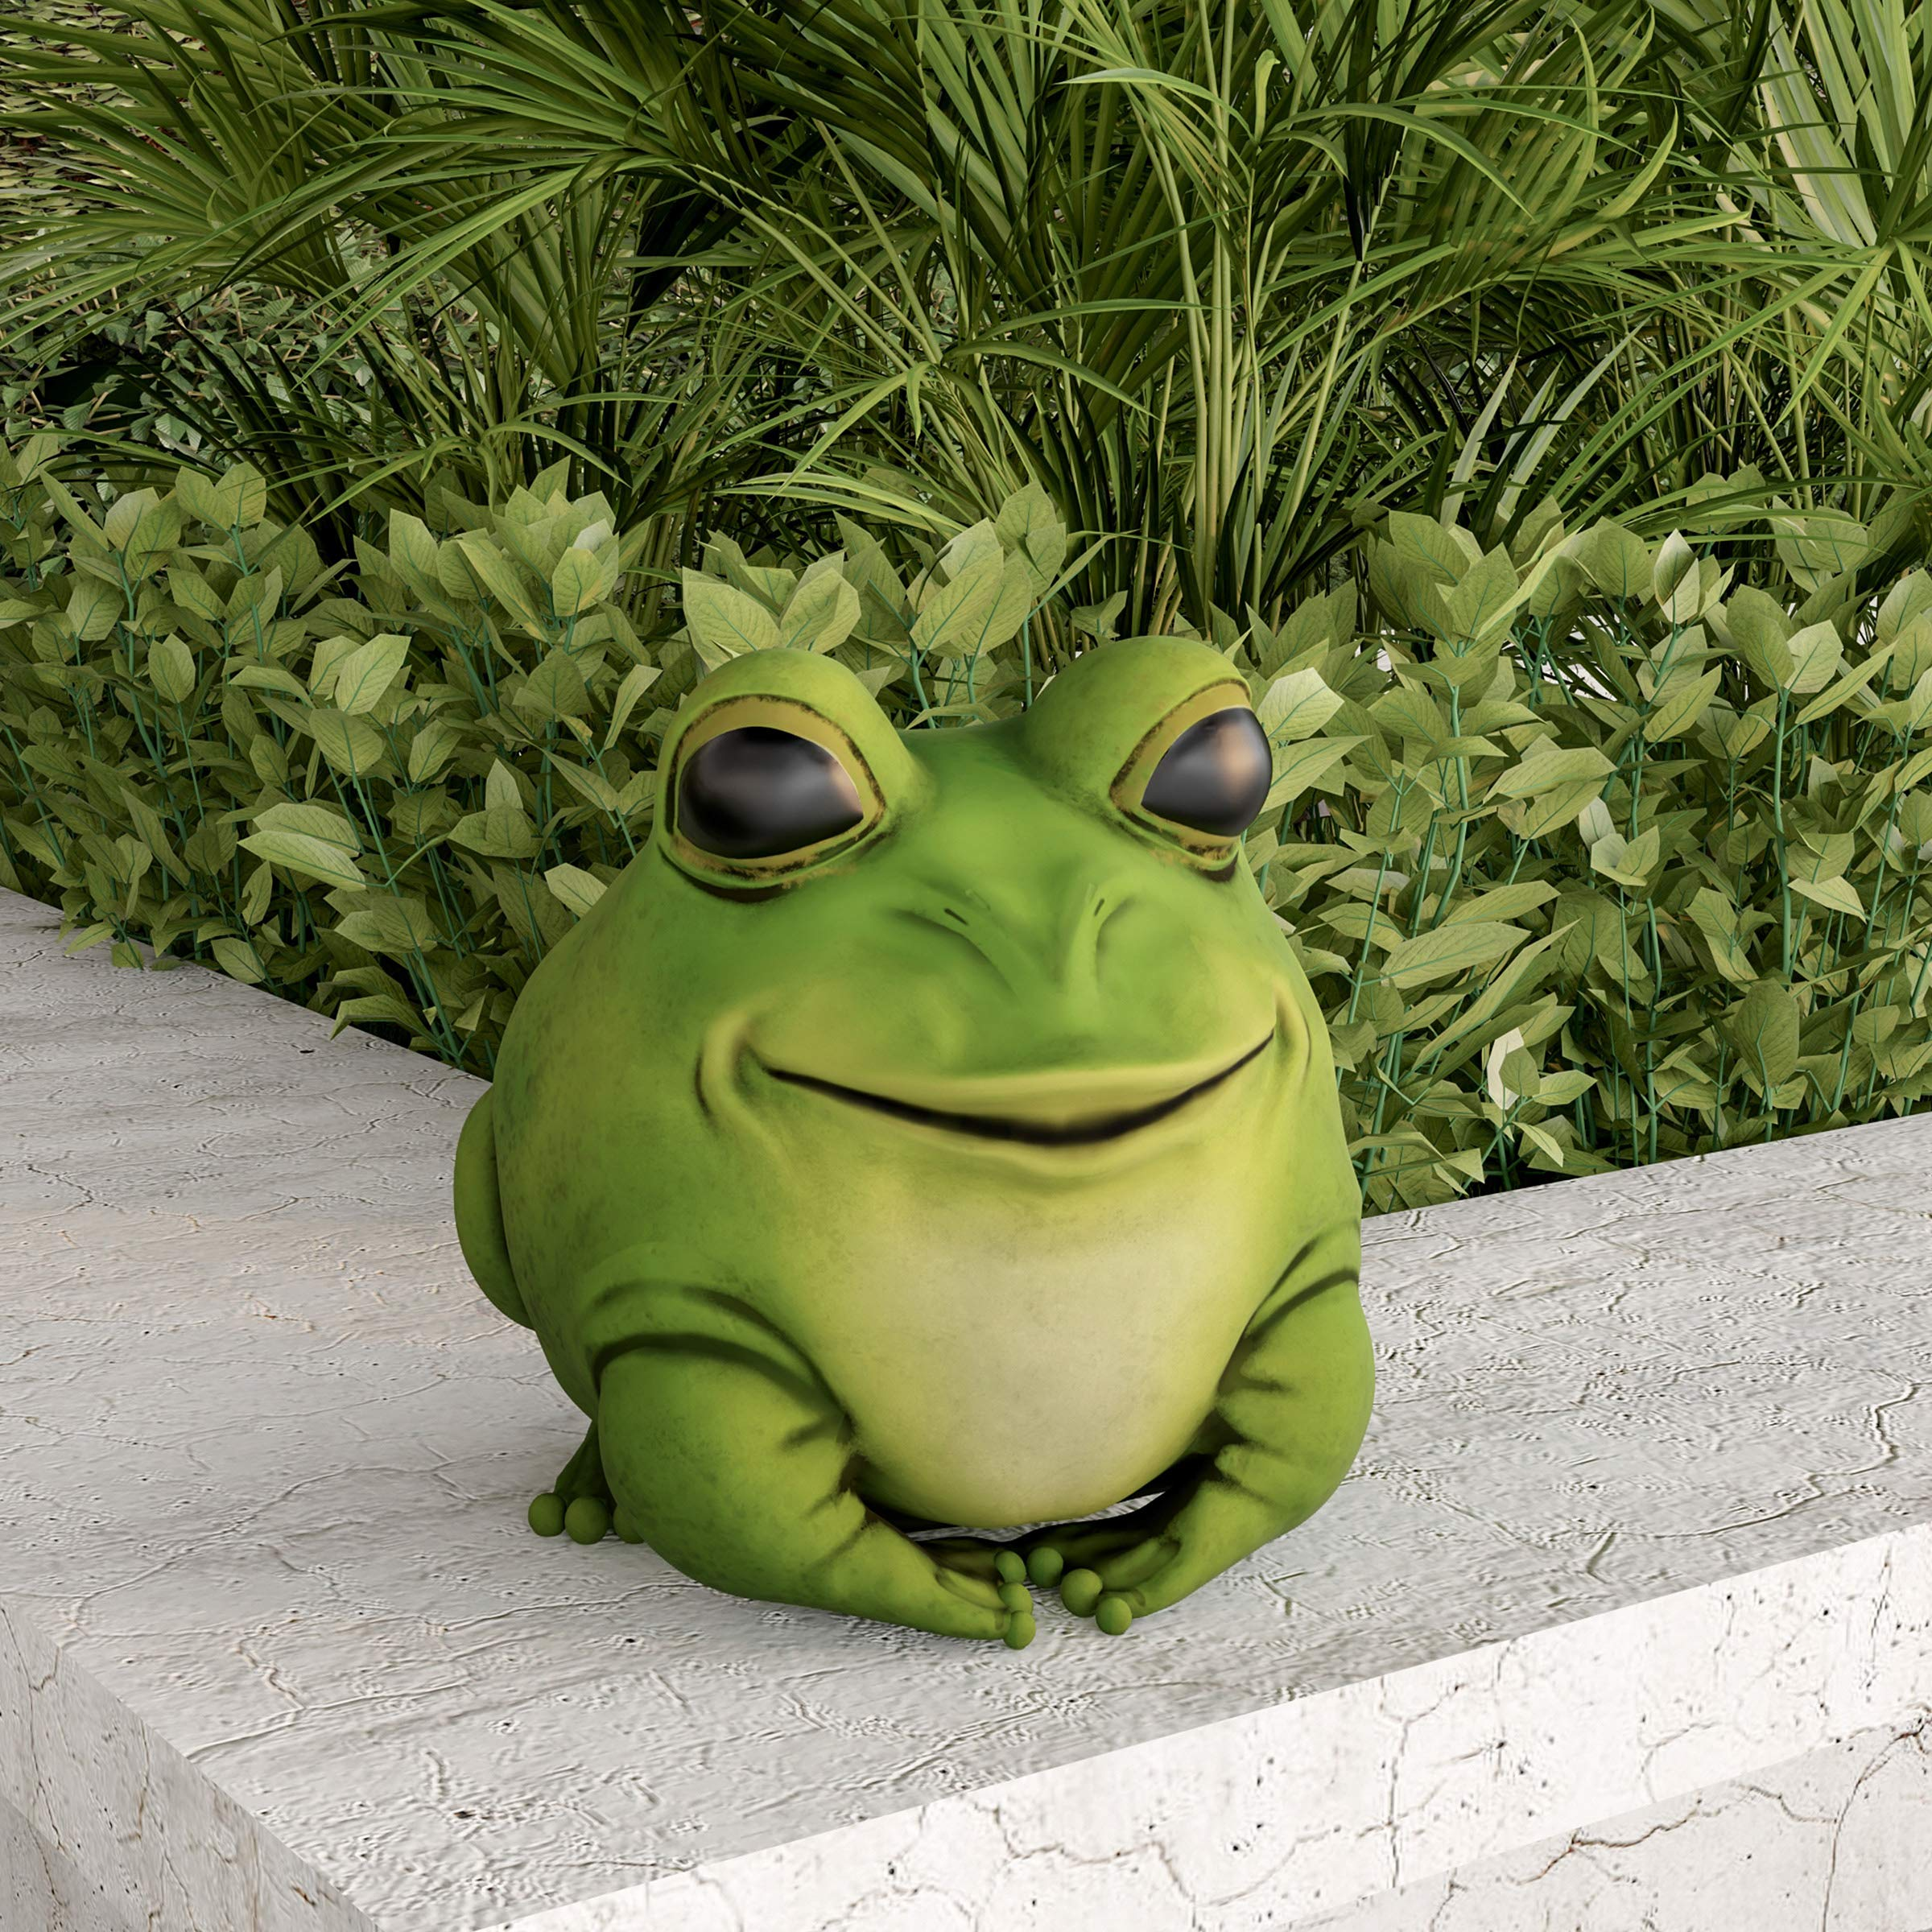 Pure Garden 50-LG1096 Frog Statue-Resin Chubby Animal Figurine for Outdoor Lawn Decor for Flower Beds, Fairy Gardens, Backyards and More